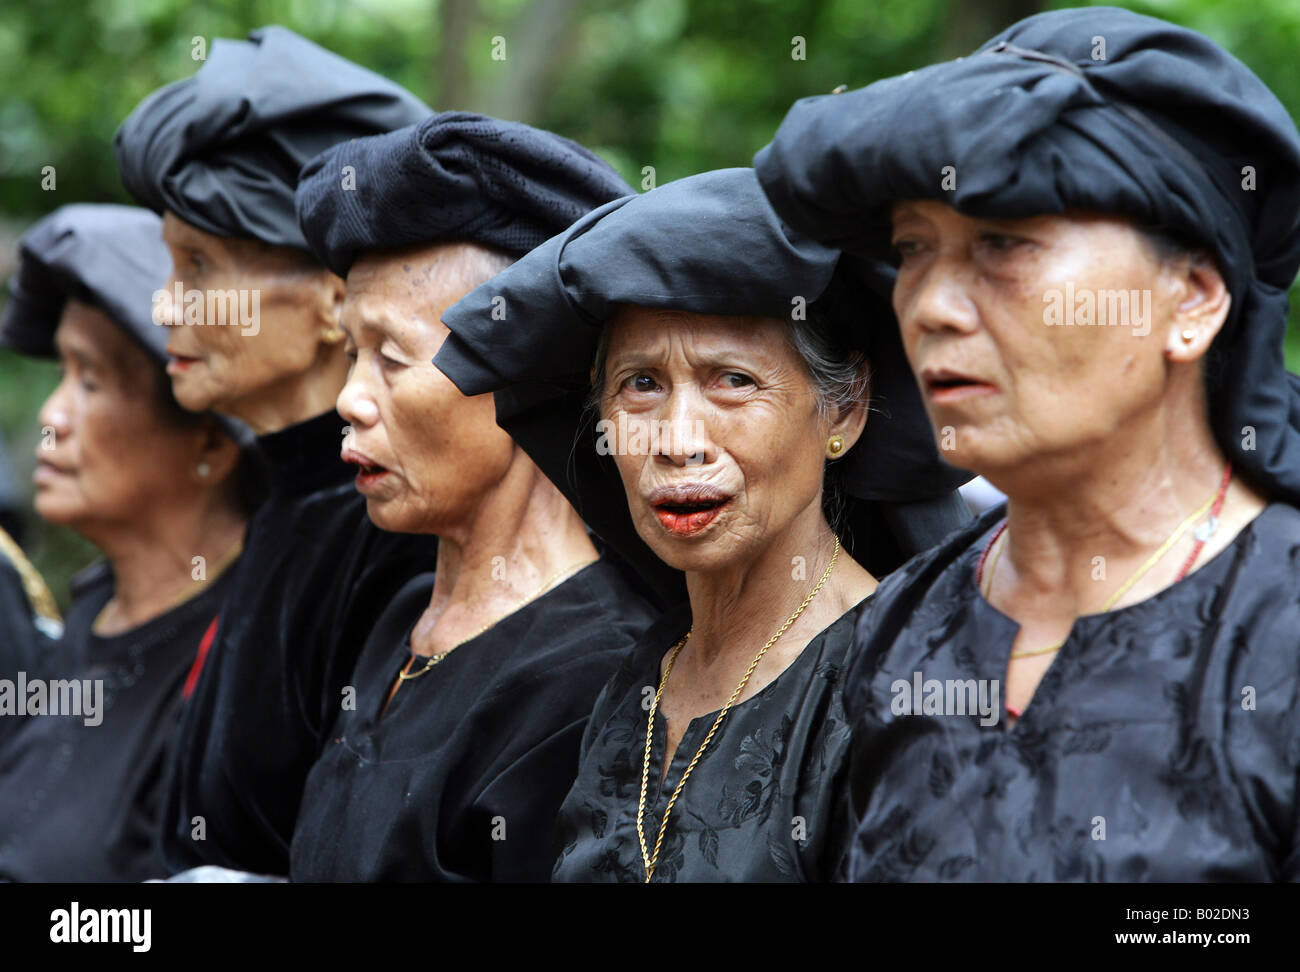 Indonesia Sulawesi Tana Toraja: traditional funeral. Family members, relatives and friends mourning in black clothes Stock Photo